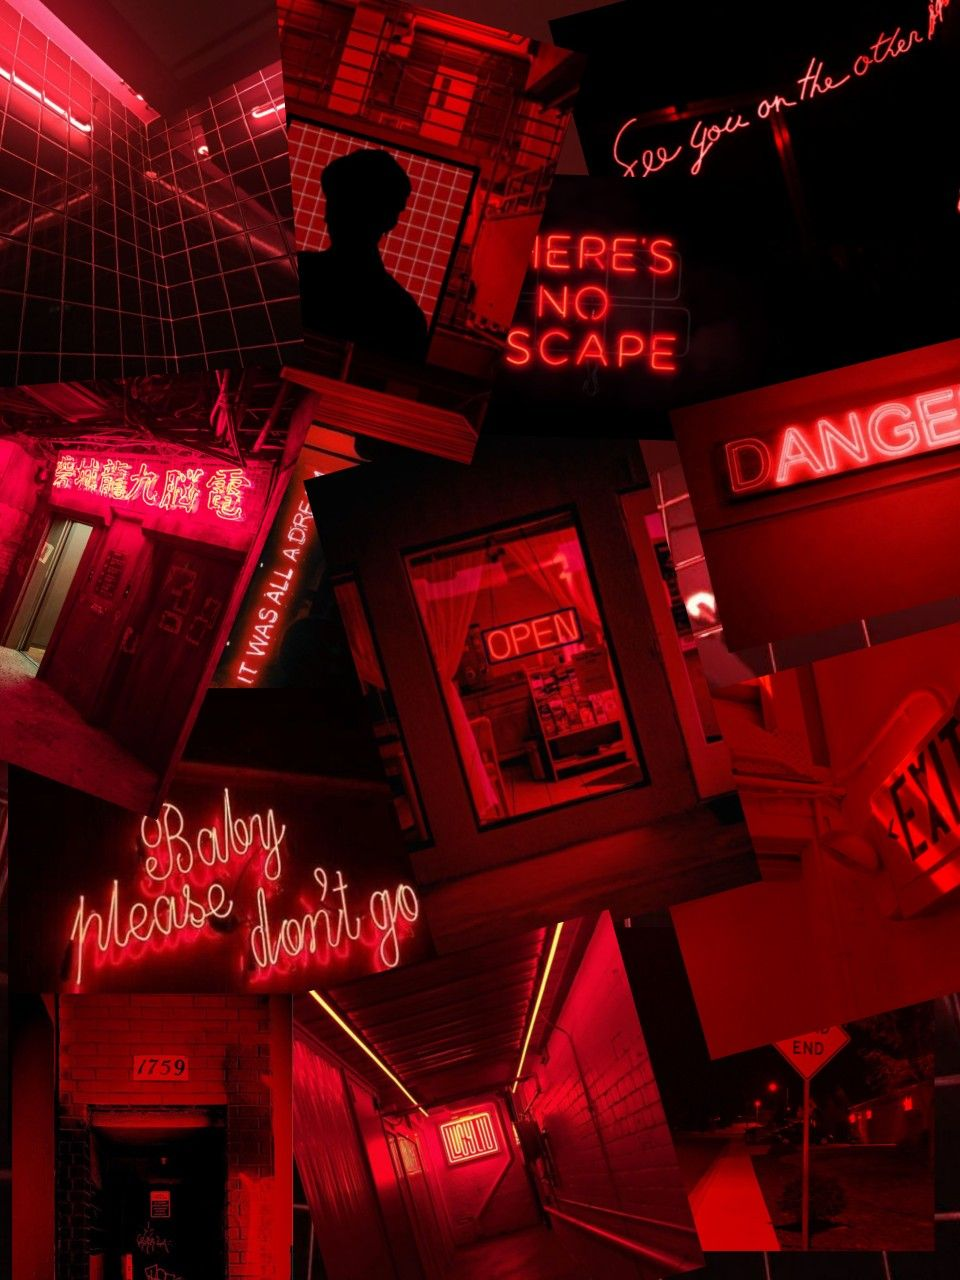 Aesthetic Red Aesthetic Grunge Neon Aesthetic Red And Black Wallpaper